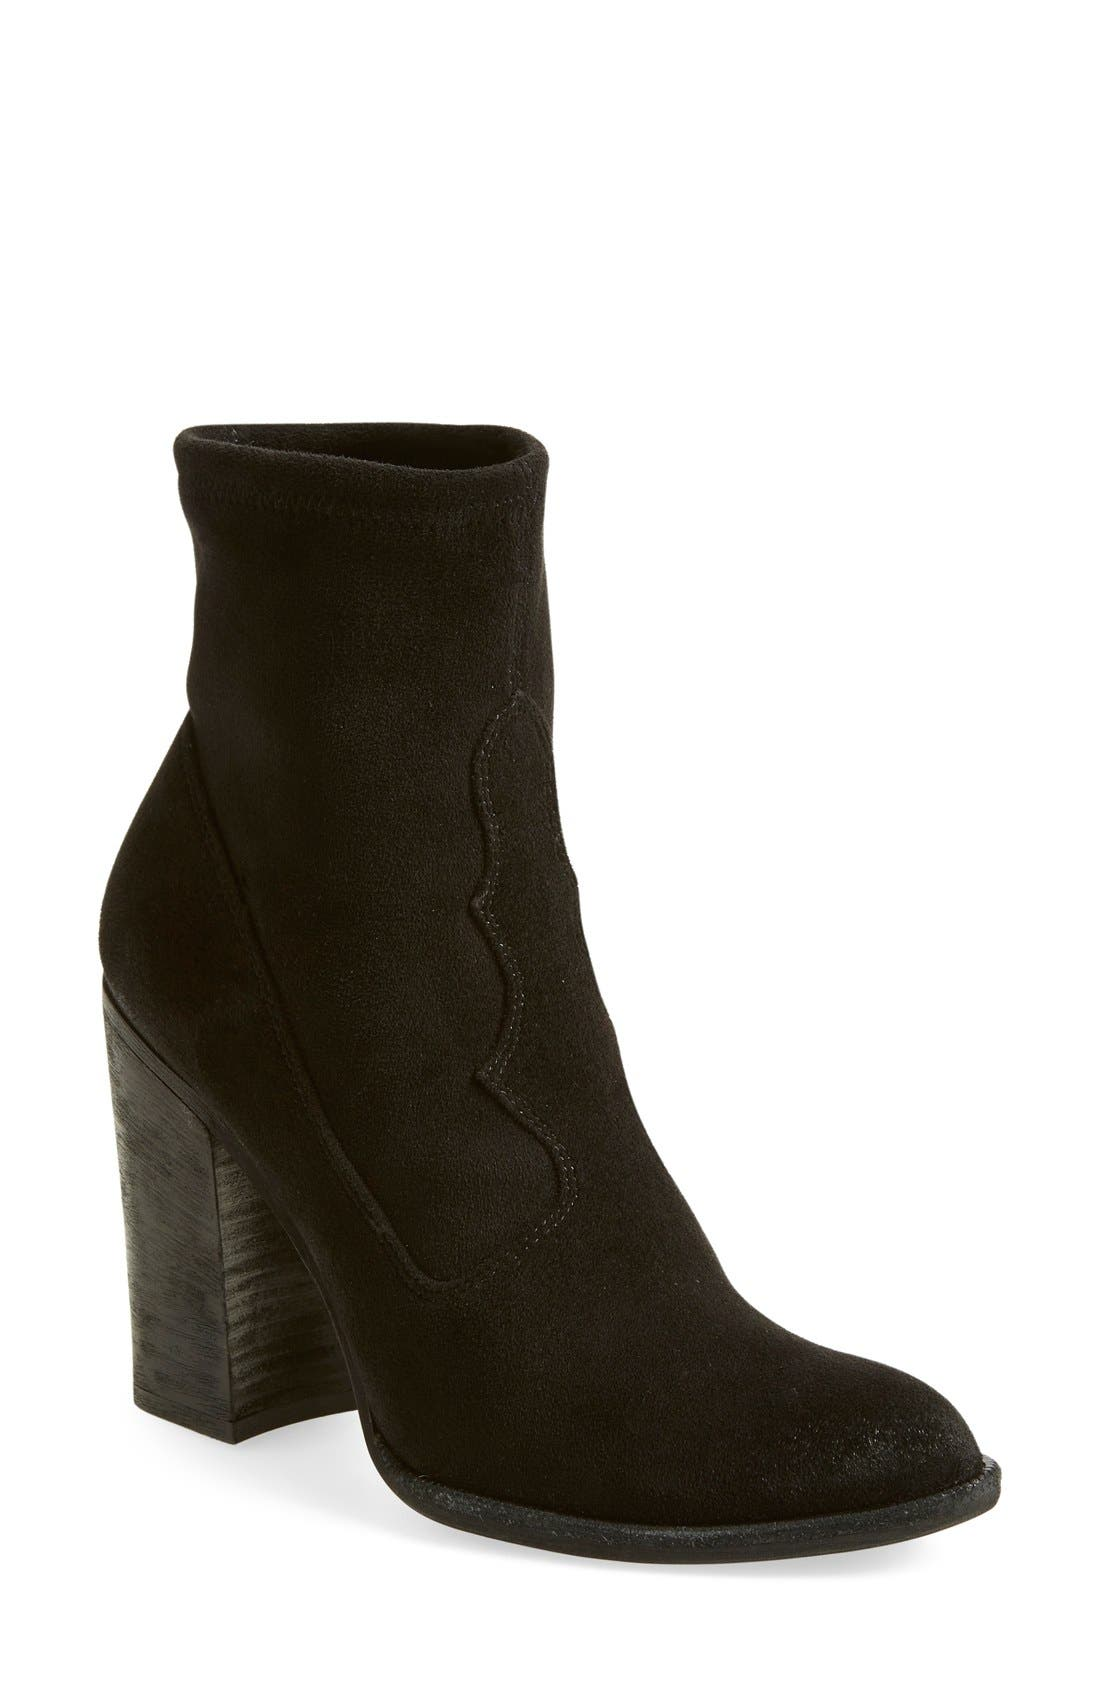 Alternate Image 1 Selected - Dolce Vita 'Cammi' Boot (Women)